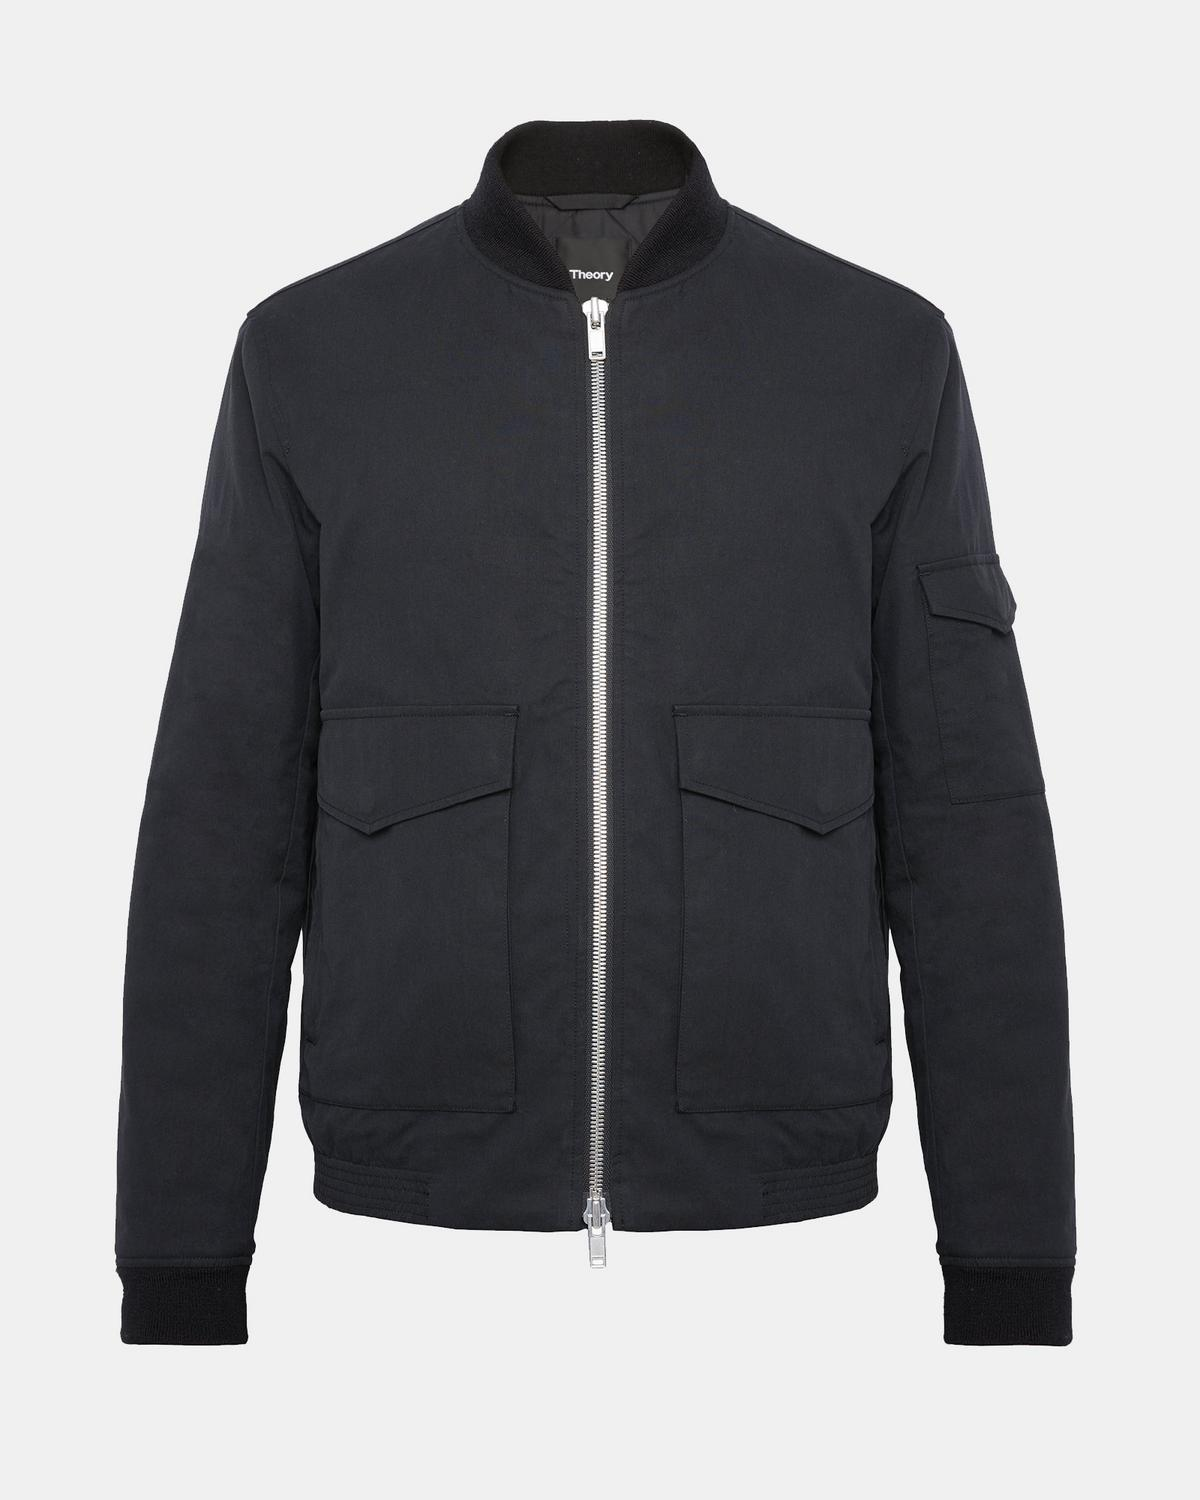 Cotton Canvas Bomber Jacket | Theory